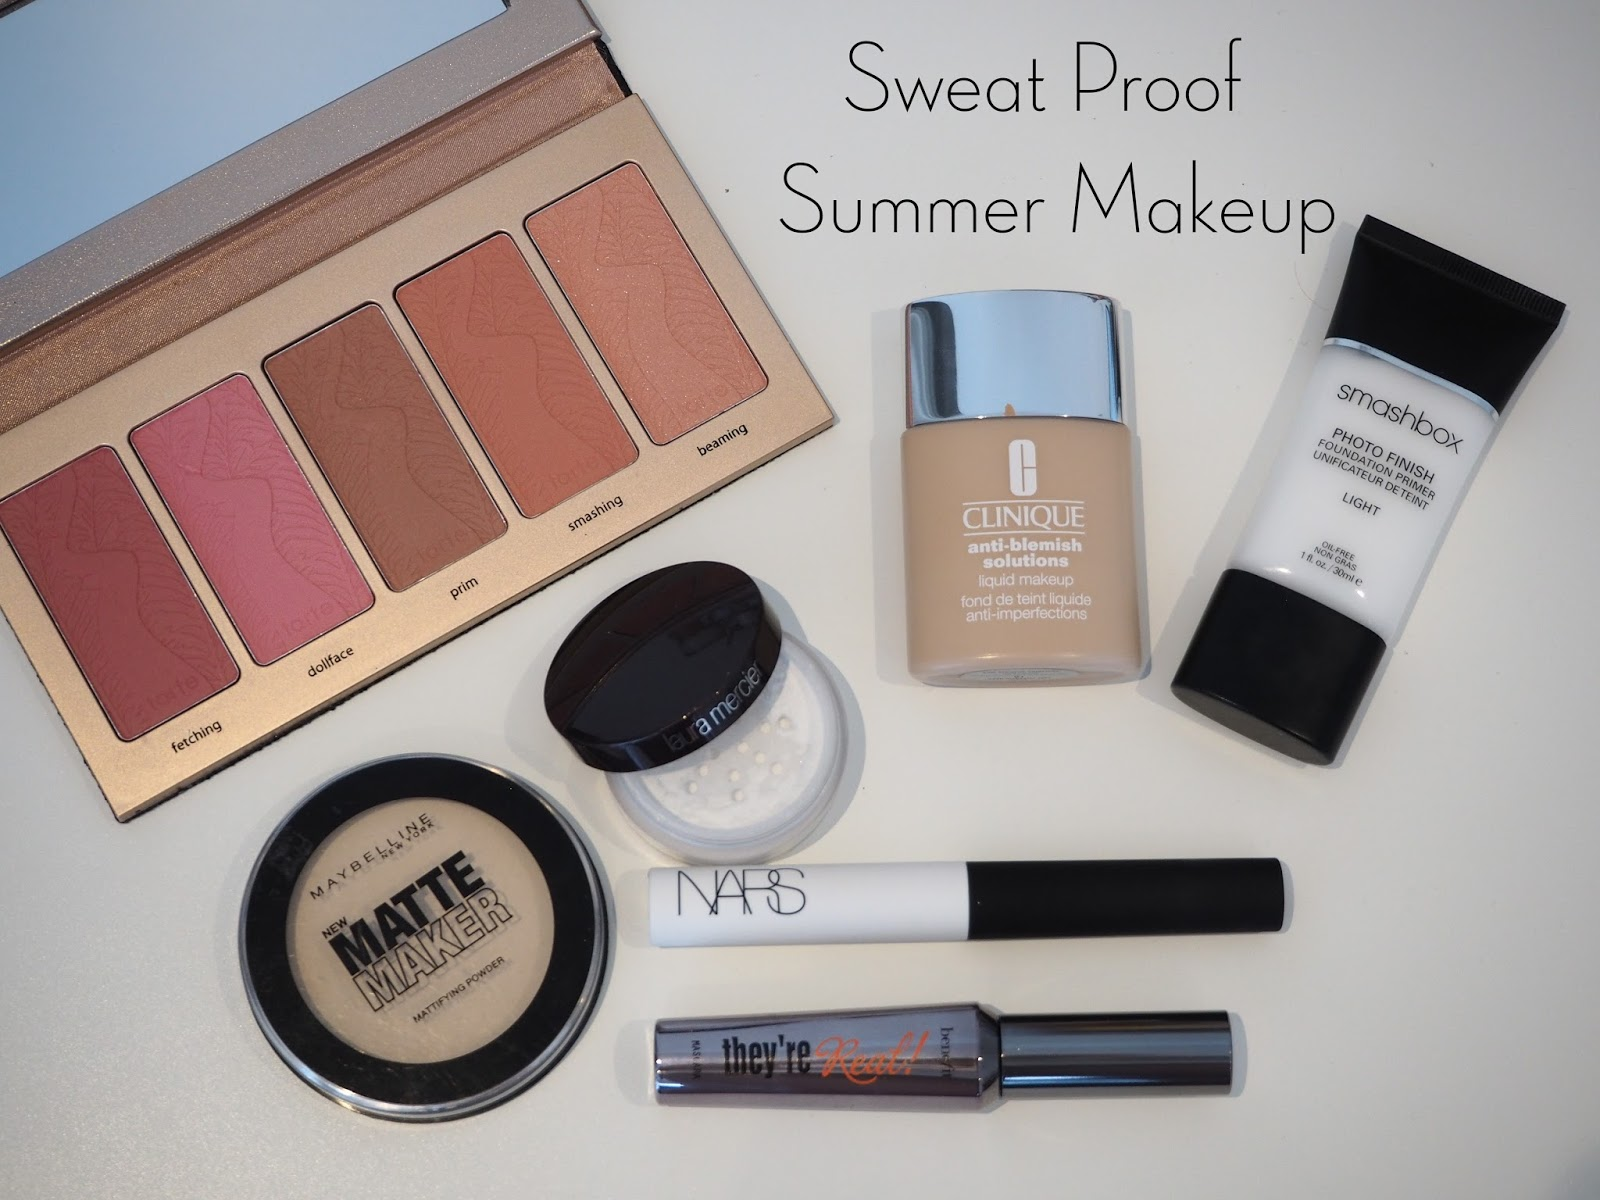 sweat proof summer makeup, oily skin makeup, combination skin makeup, smashbox photo finish primer light, clinique anti-blemish solutions foundation, maybelline matte maker powder, laura mercier secret brightening powder, tarte amazonian clay 12 hour blush, nars pro prime smudge proof eyeshadow primer, benefit they're real mascara